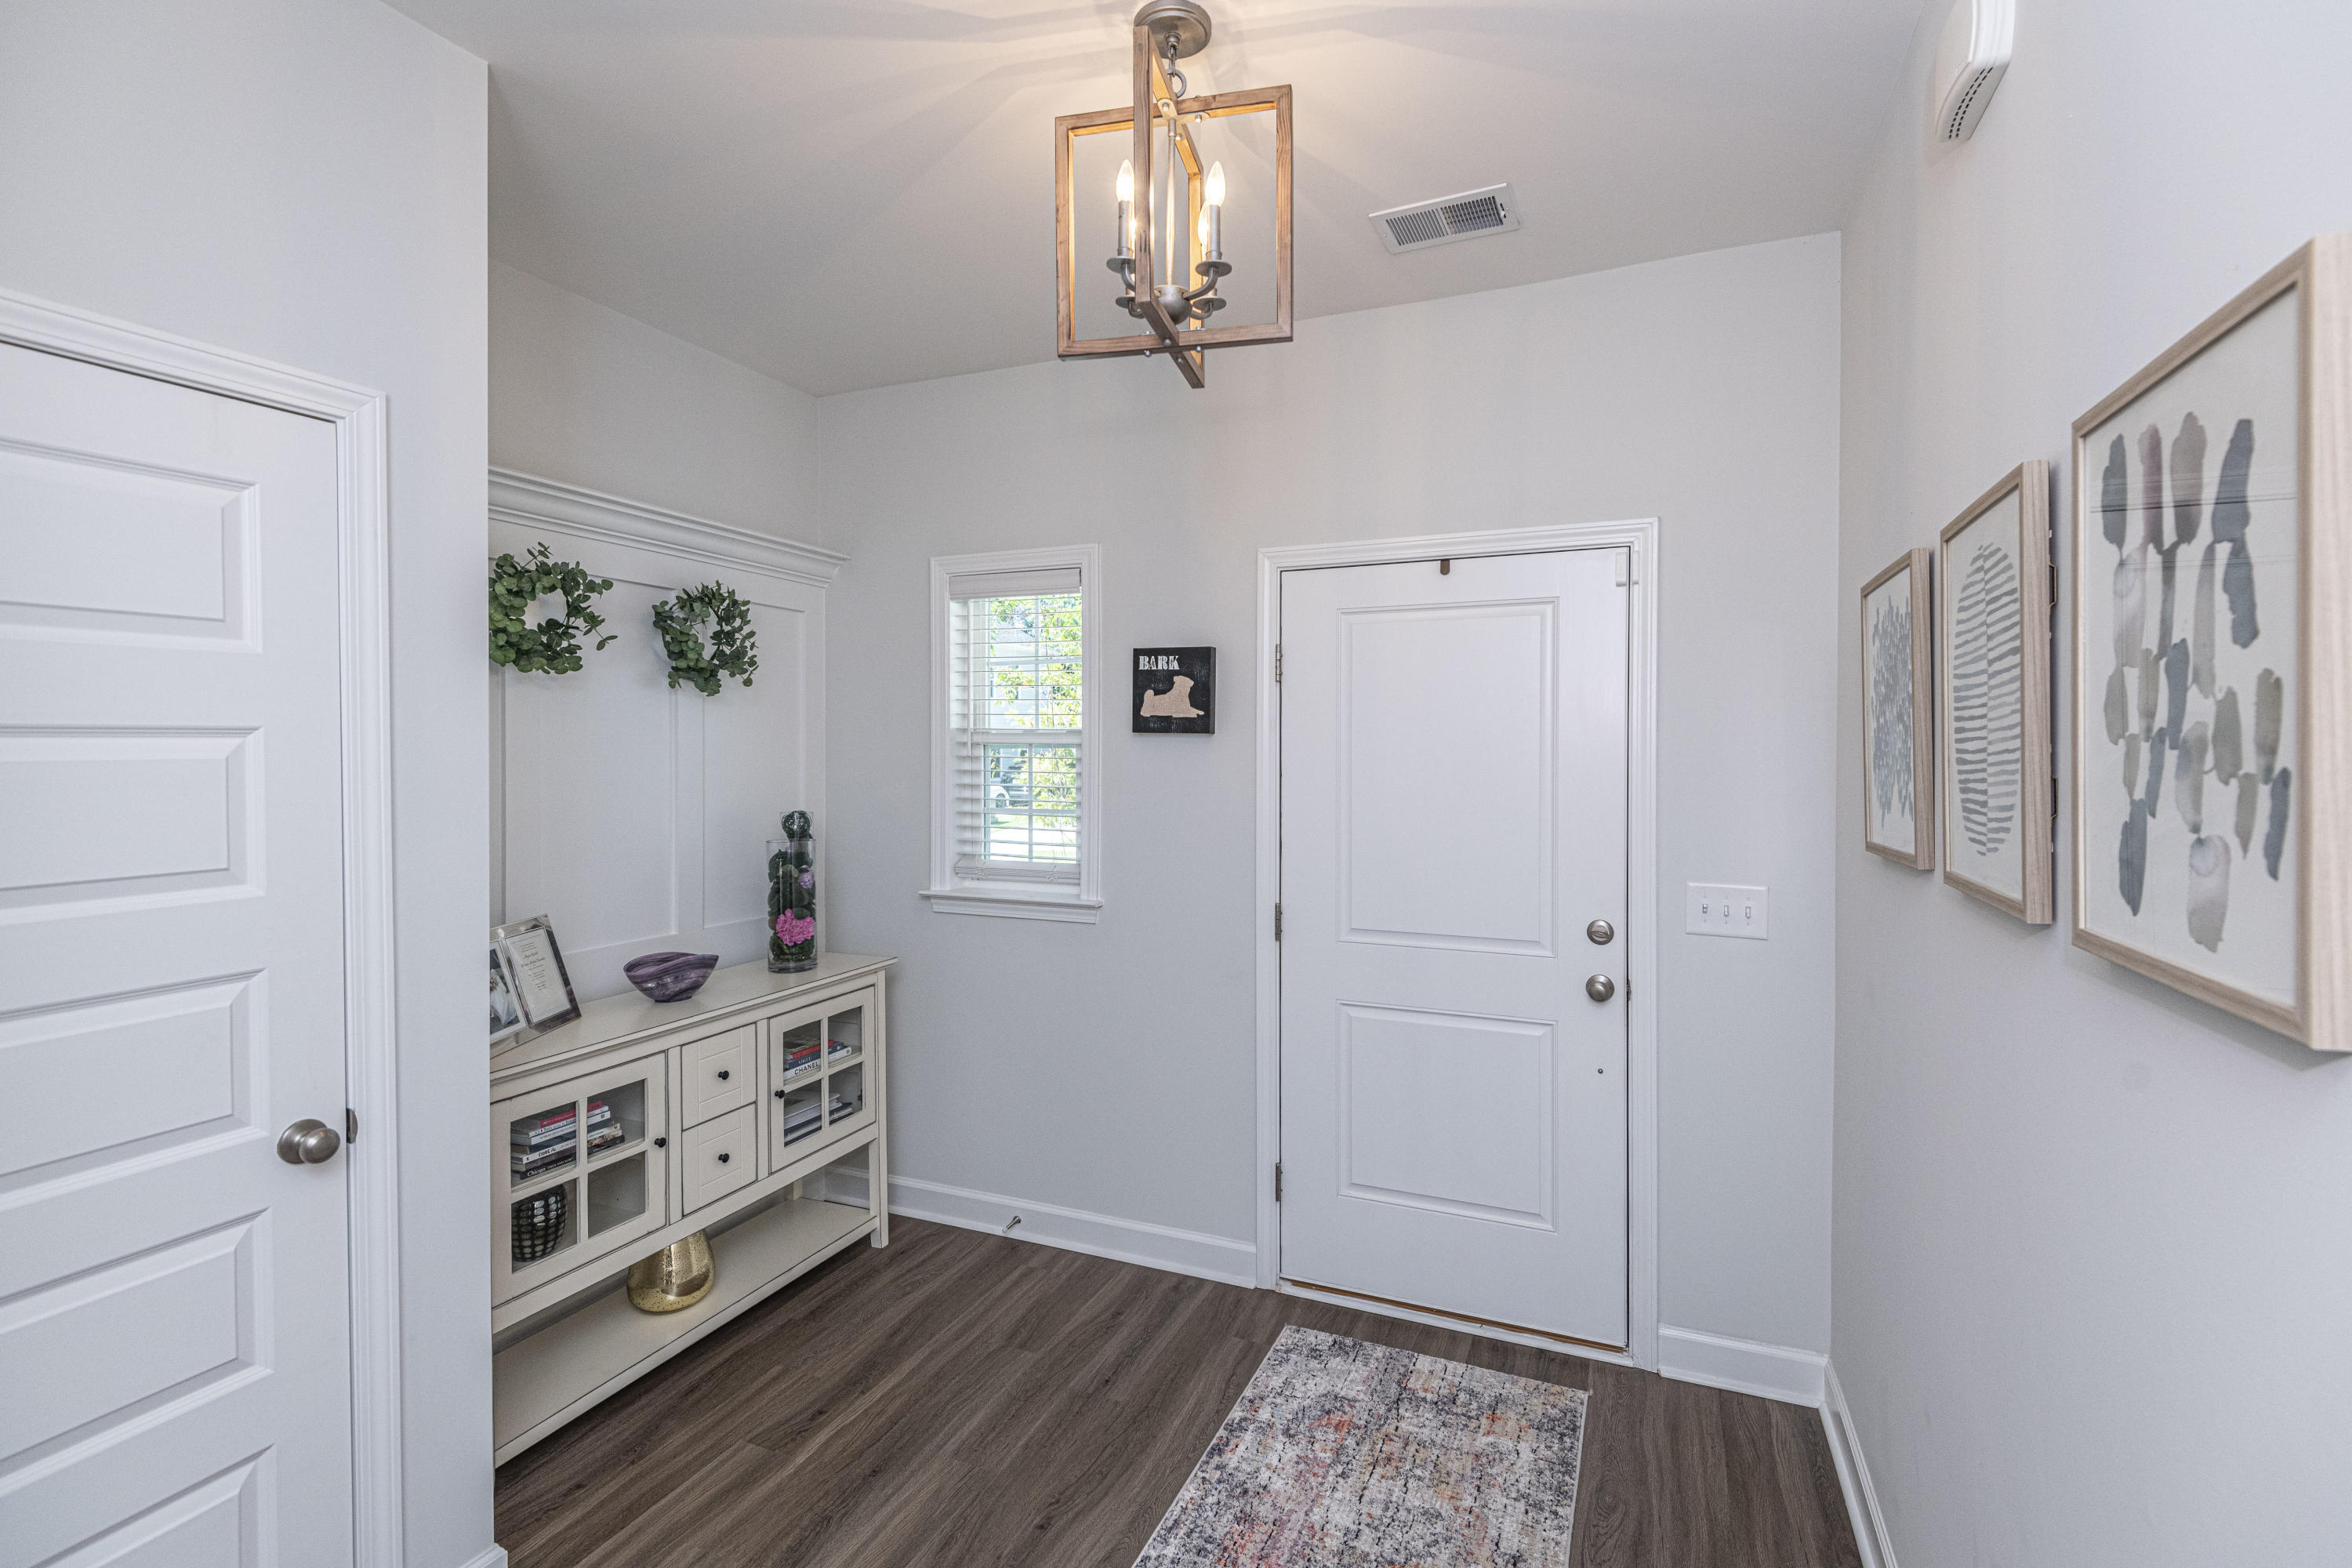 The Oaks at St Johns Crossing Homes For Sale - 1692 Emmets, Johns Island, SC - 2